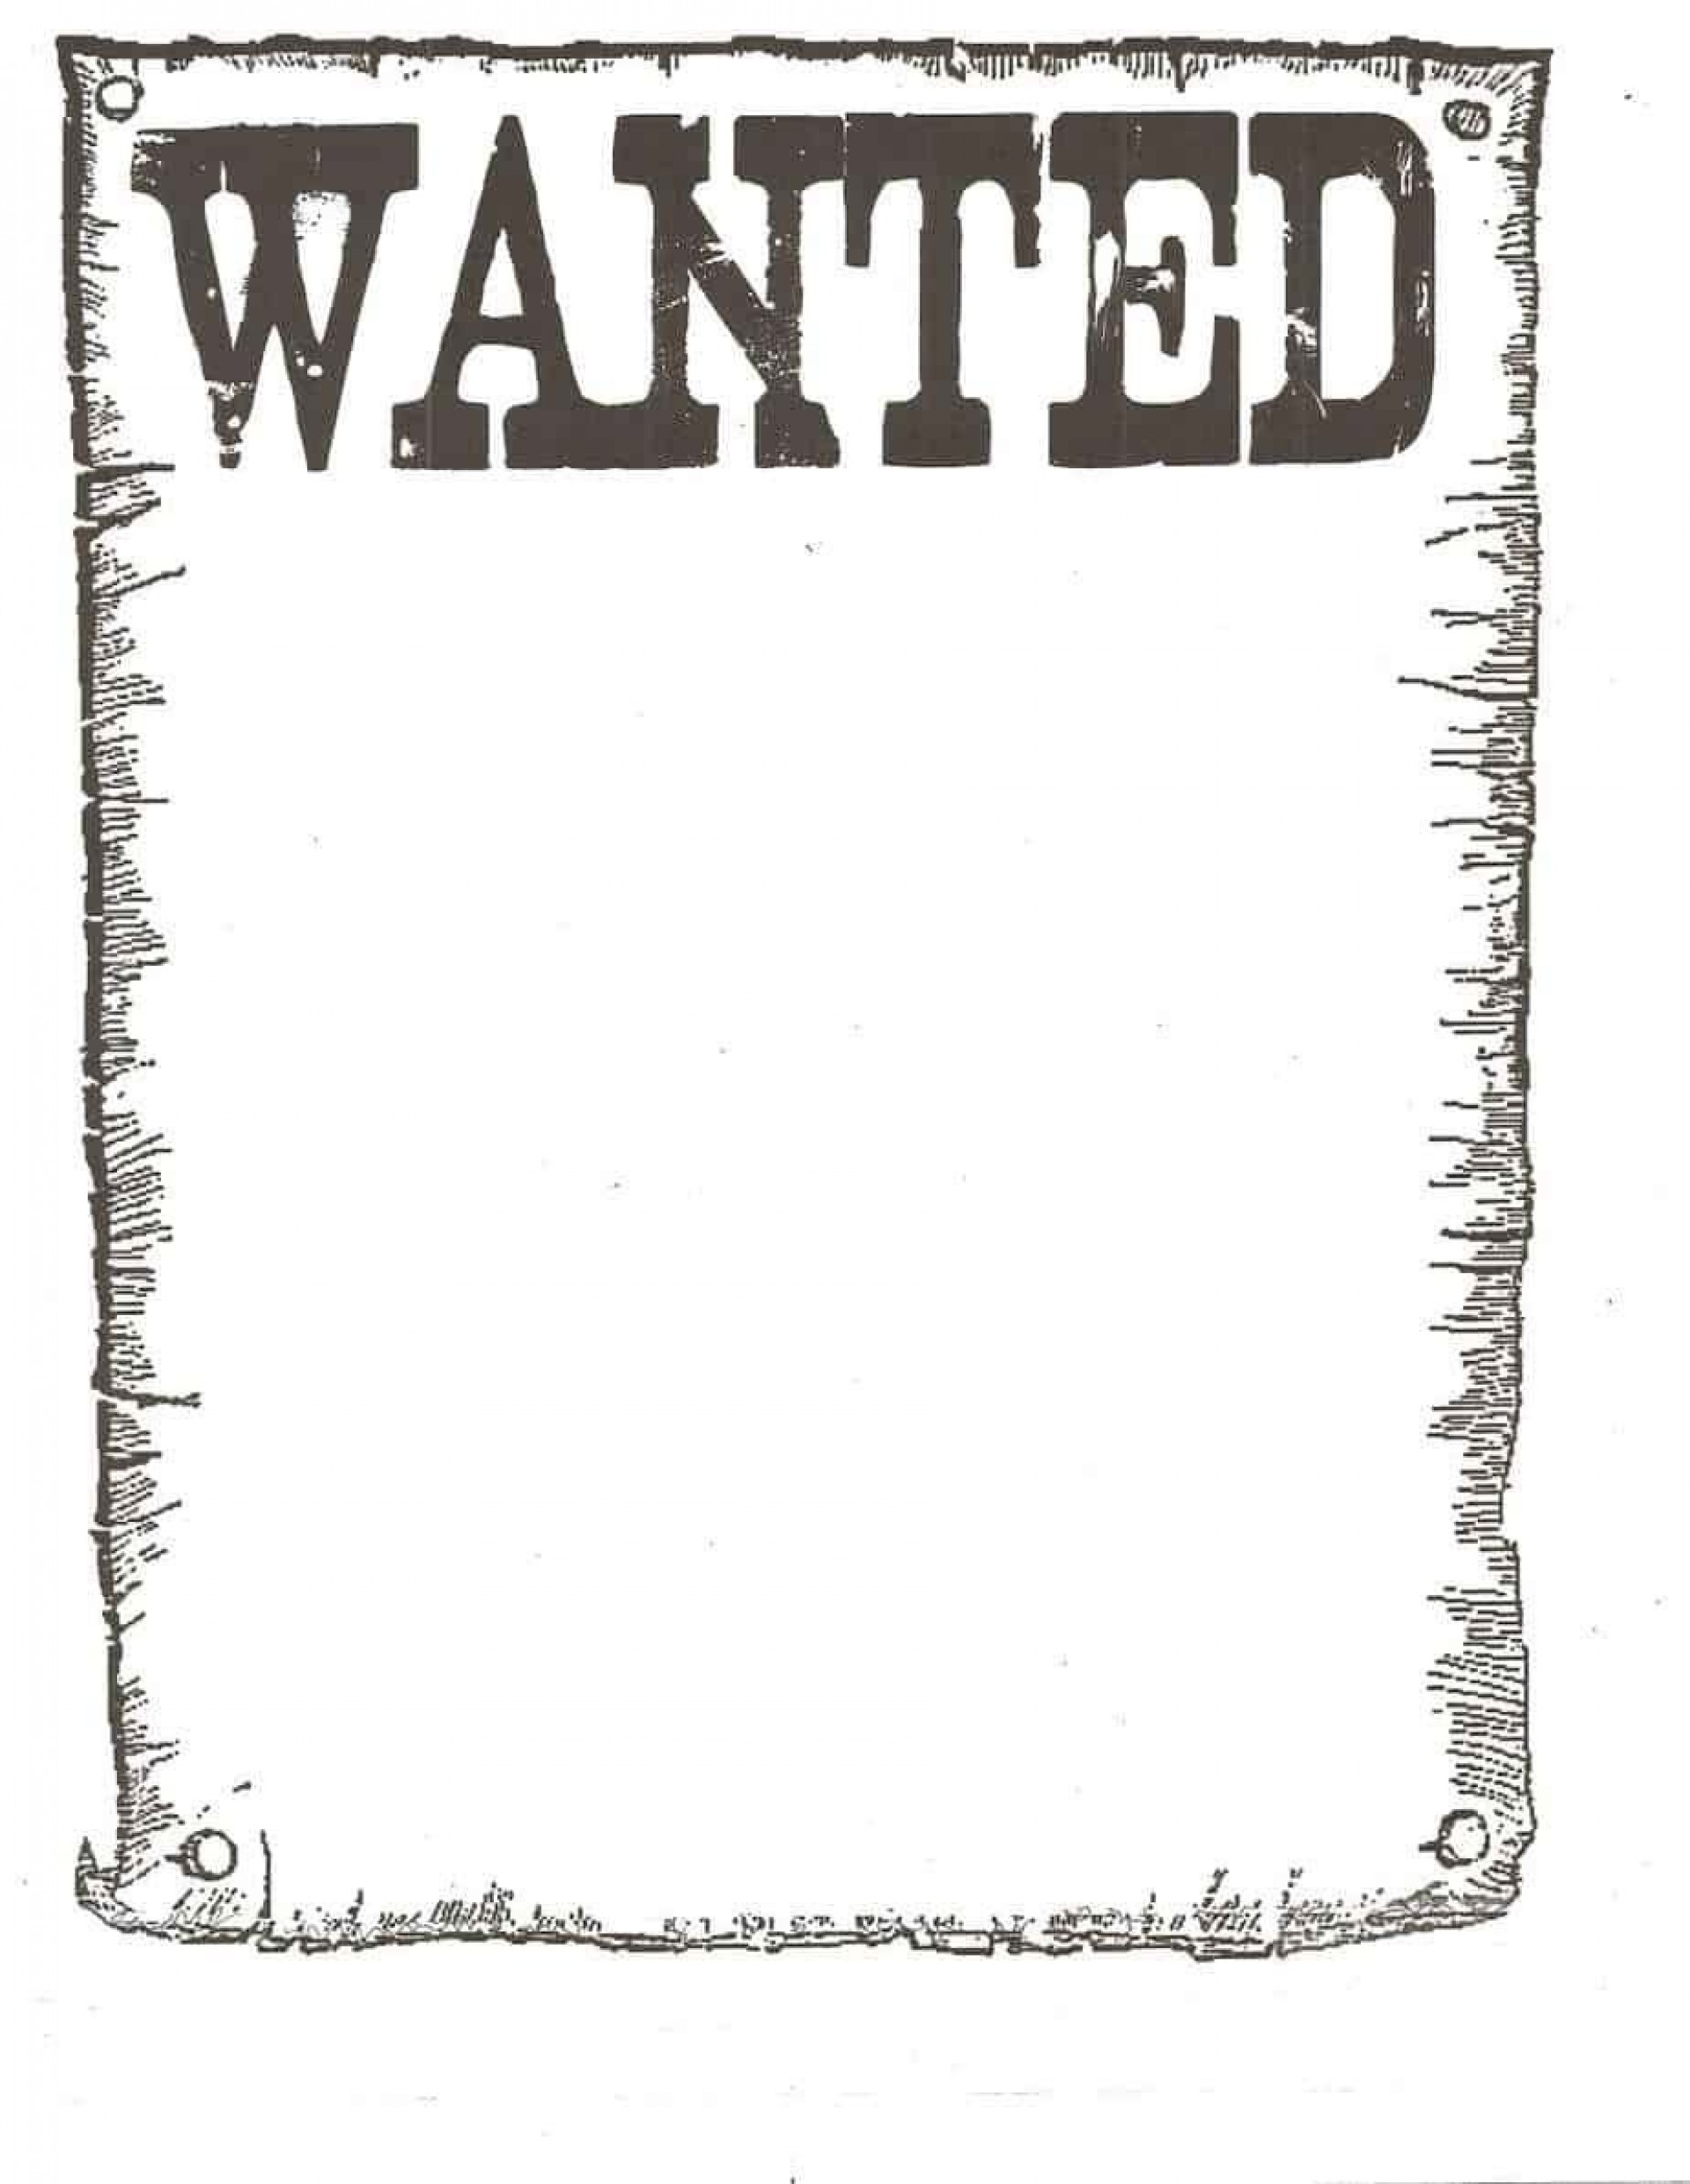 006 Awful Wanted Poster Template Microsoft Word High Resolution  Western Most1920